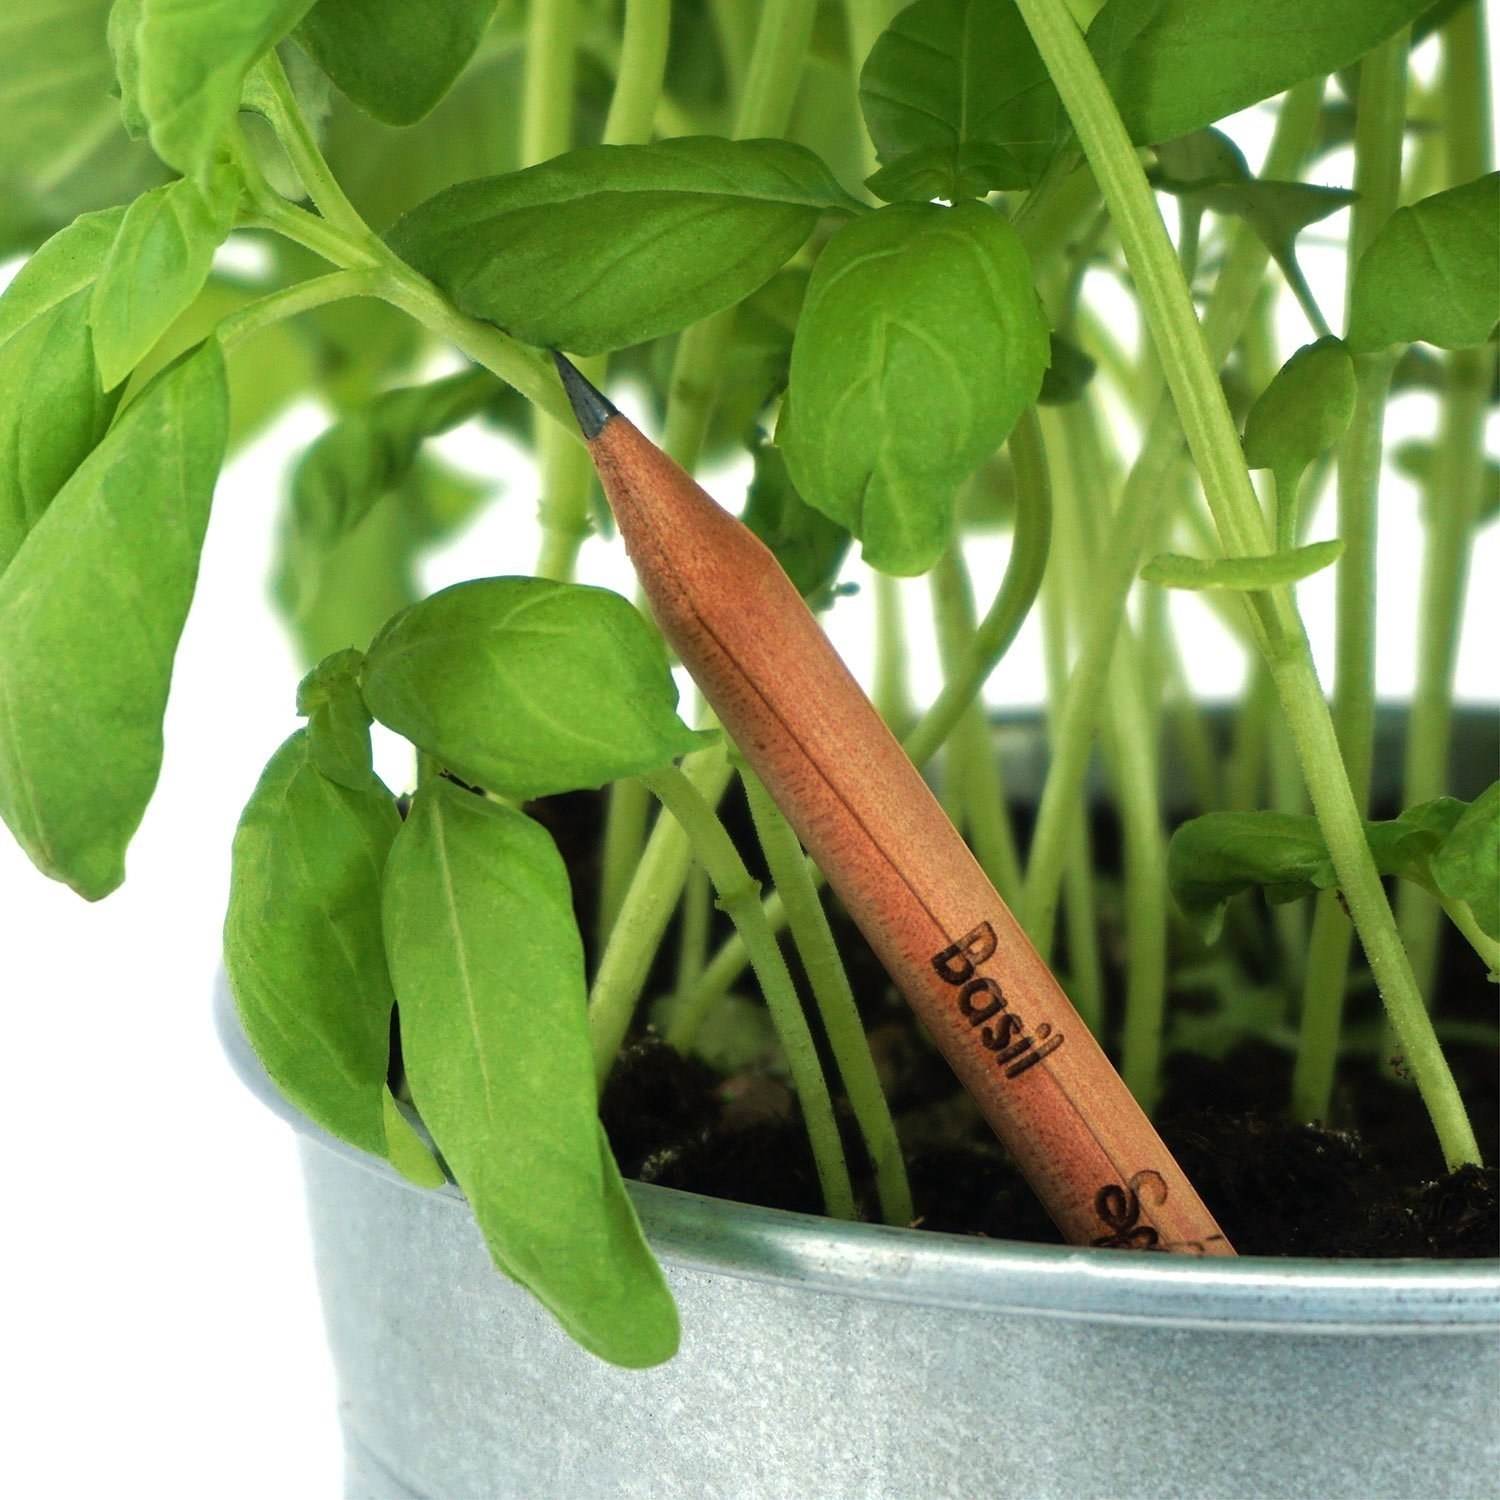 a pencil that says basil on it that has been planted in soil